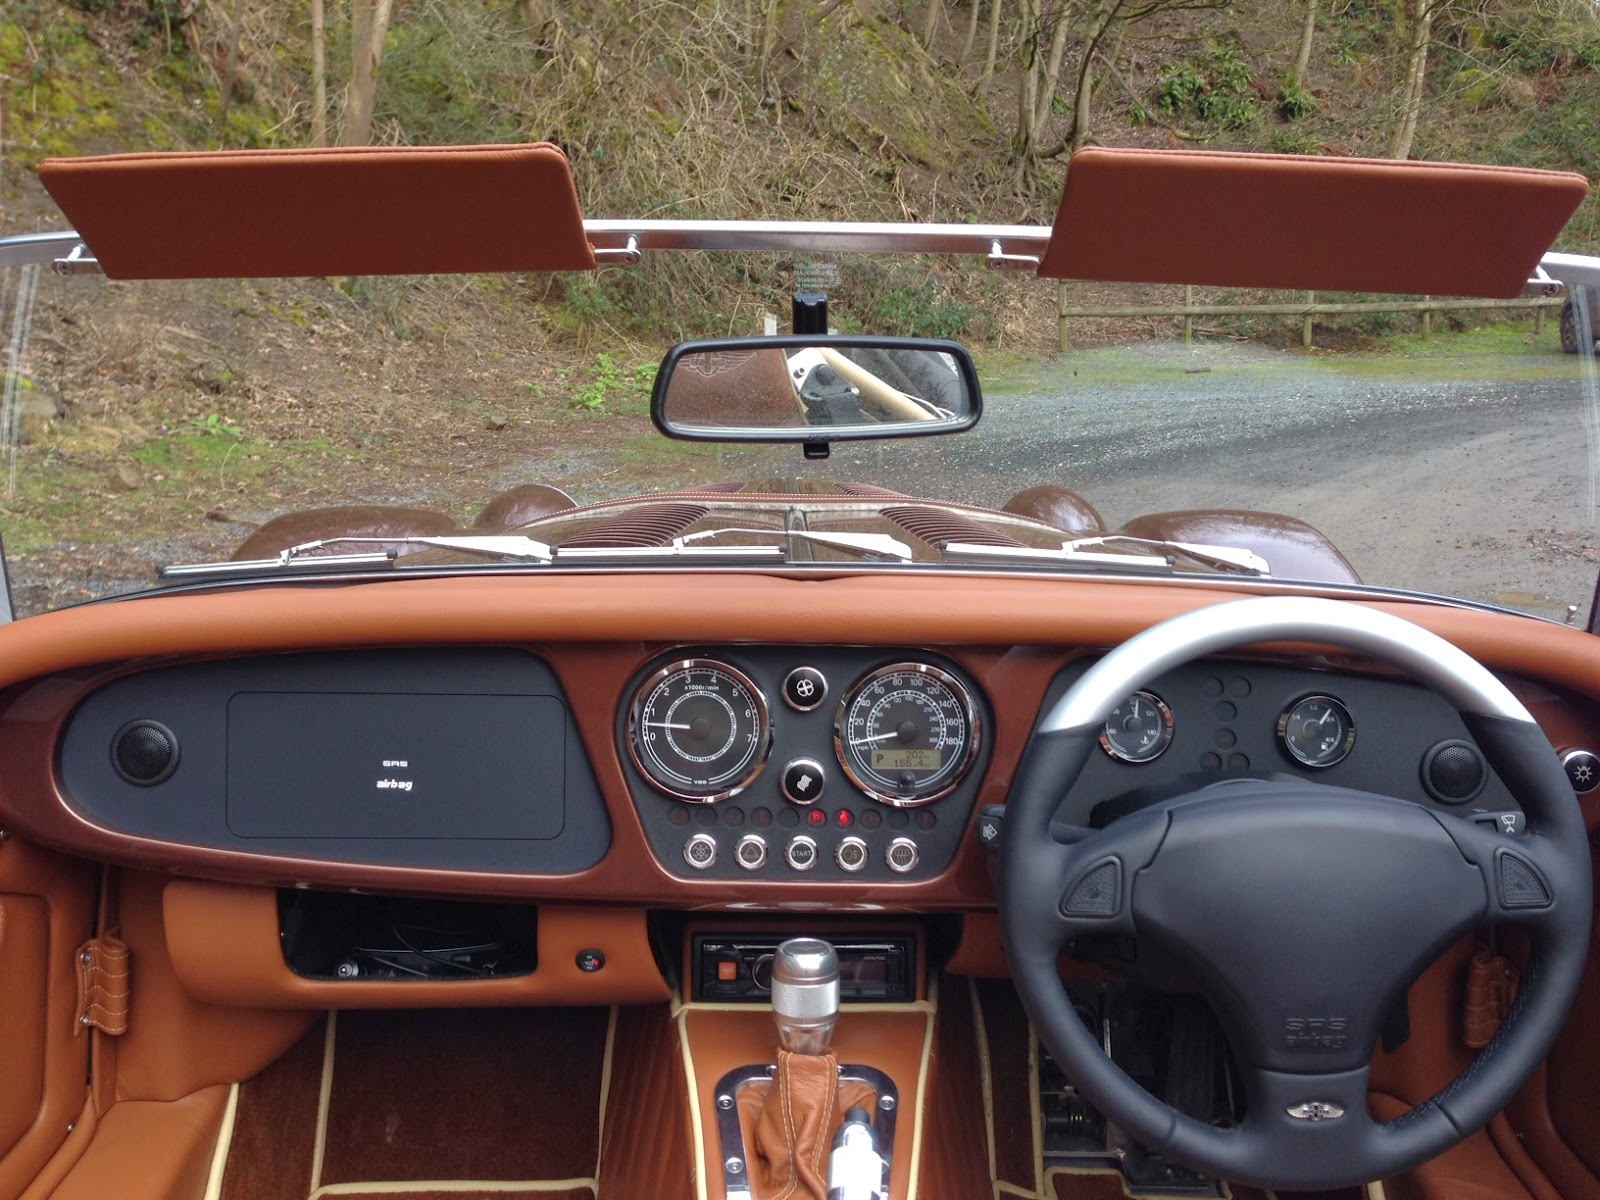 2014 Morgan Plus 8 dashboard